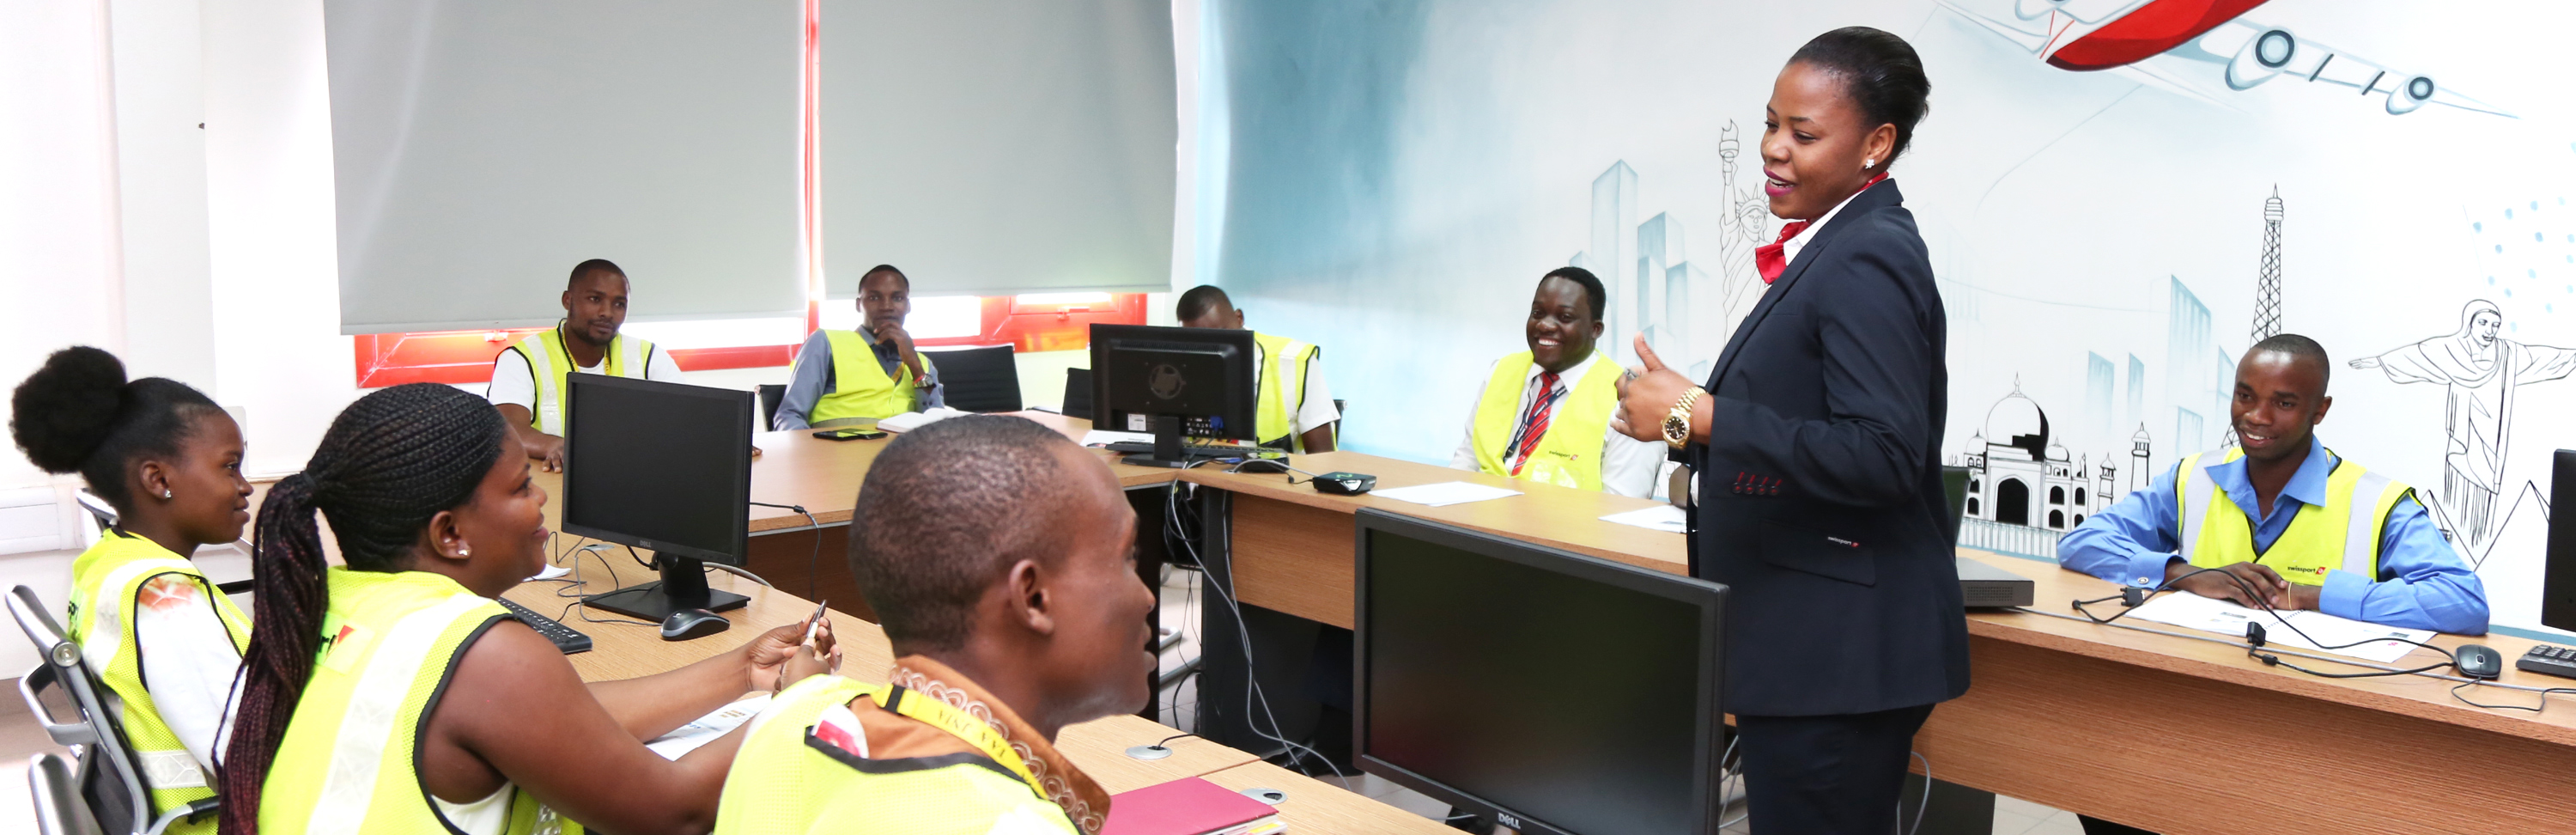 TRAINING-SP001 Tanzania Pport Application Form on